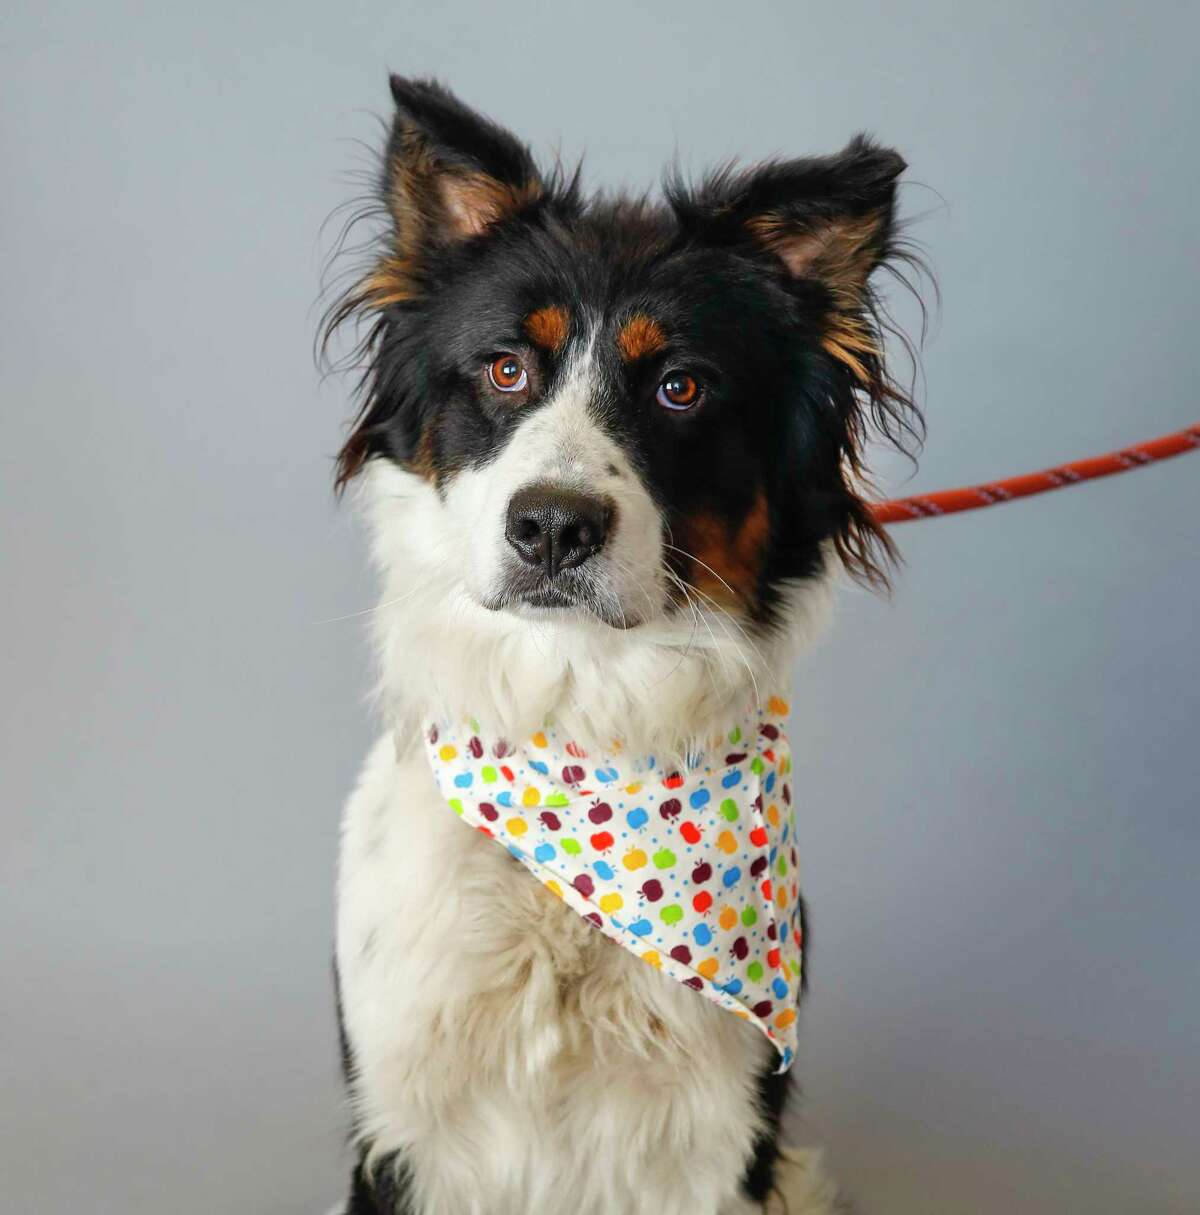 Travis (A1673037) is a 3-year-old, male, tricolor Border Collie/Austrailian Shepherd mix available for adoption from the BARC Animal Shelter, in Houston, Tuesday, Jan. 21, 2020. Travis is such a sweet boy! He loves attention and knows how to sit. His kennel card says he is